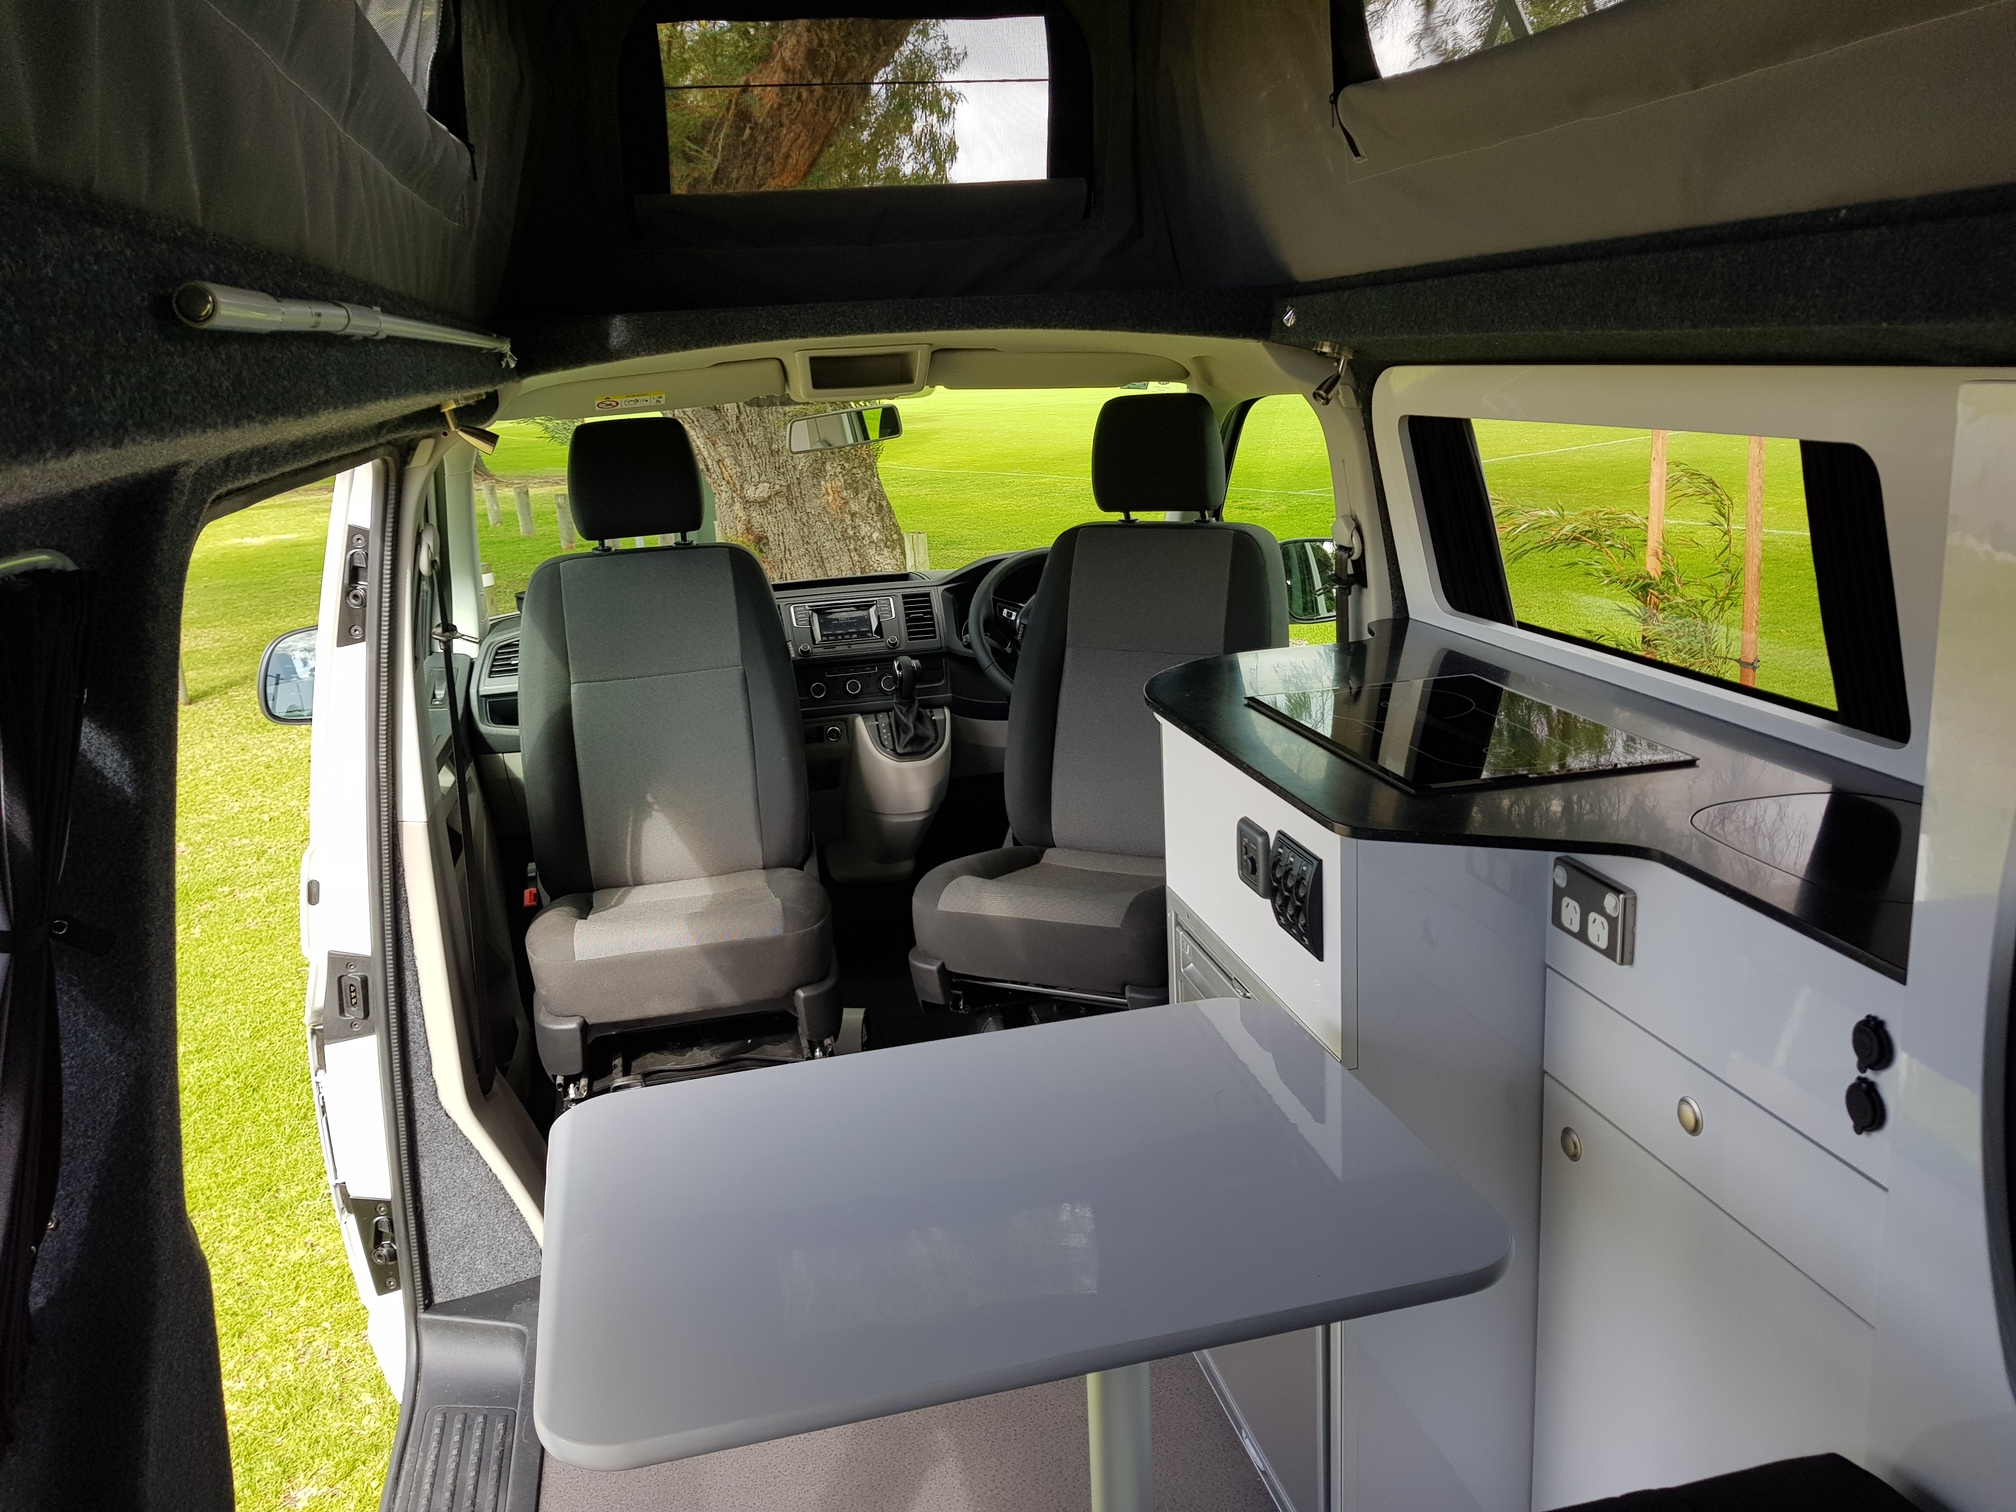 Vw Transporter T6 Dove Camper Conversions